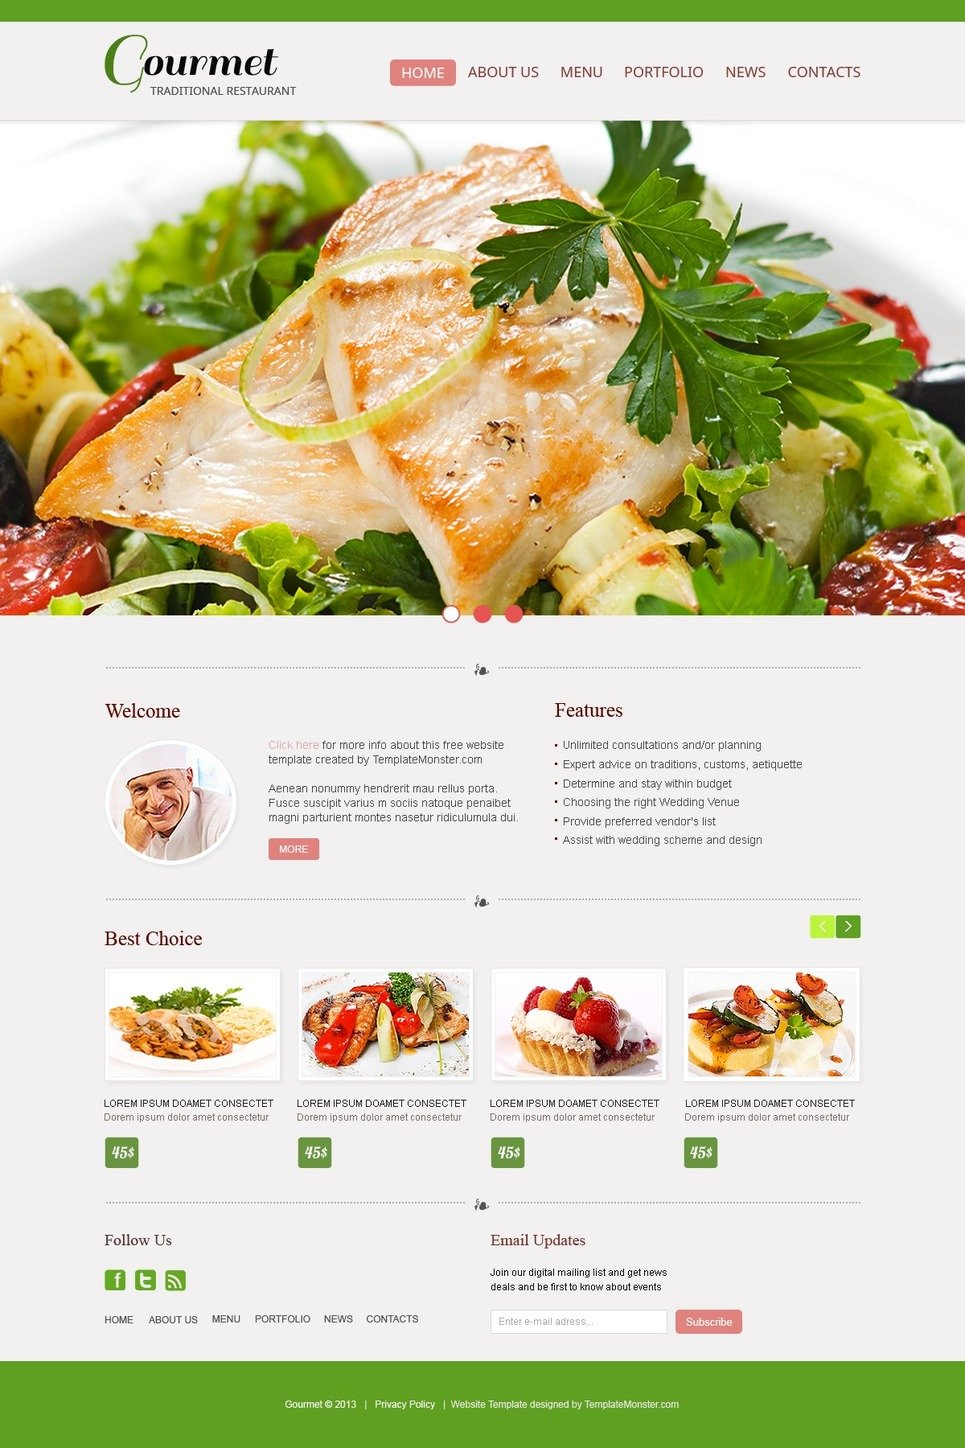 cafe menu design template free download - free website template restaurant